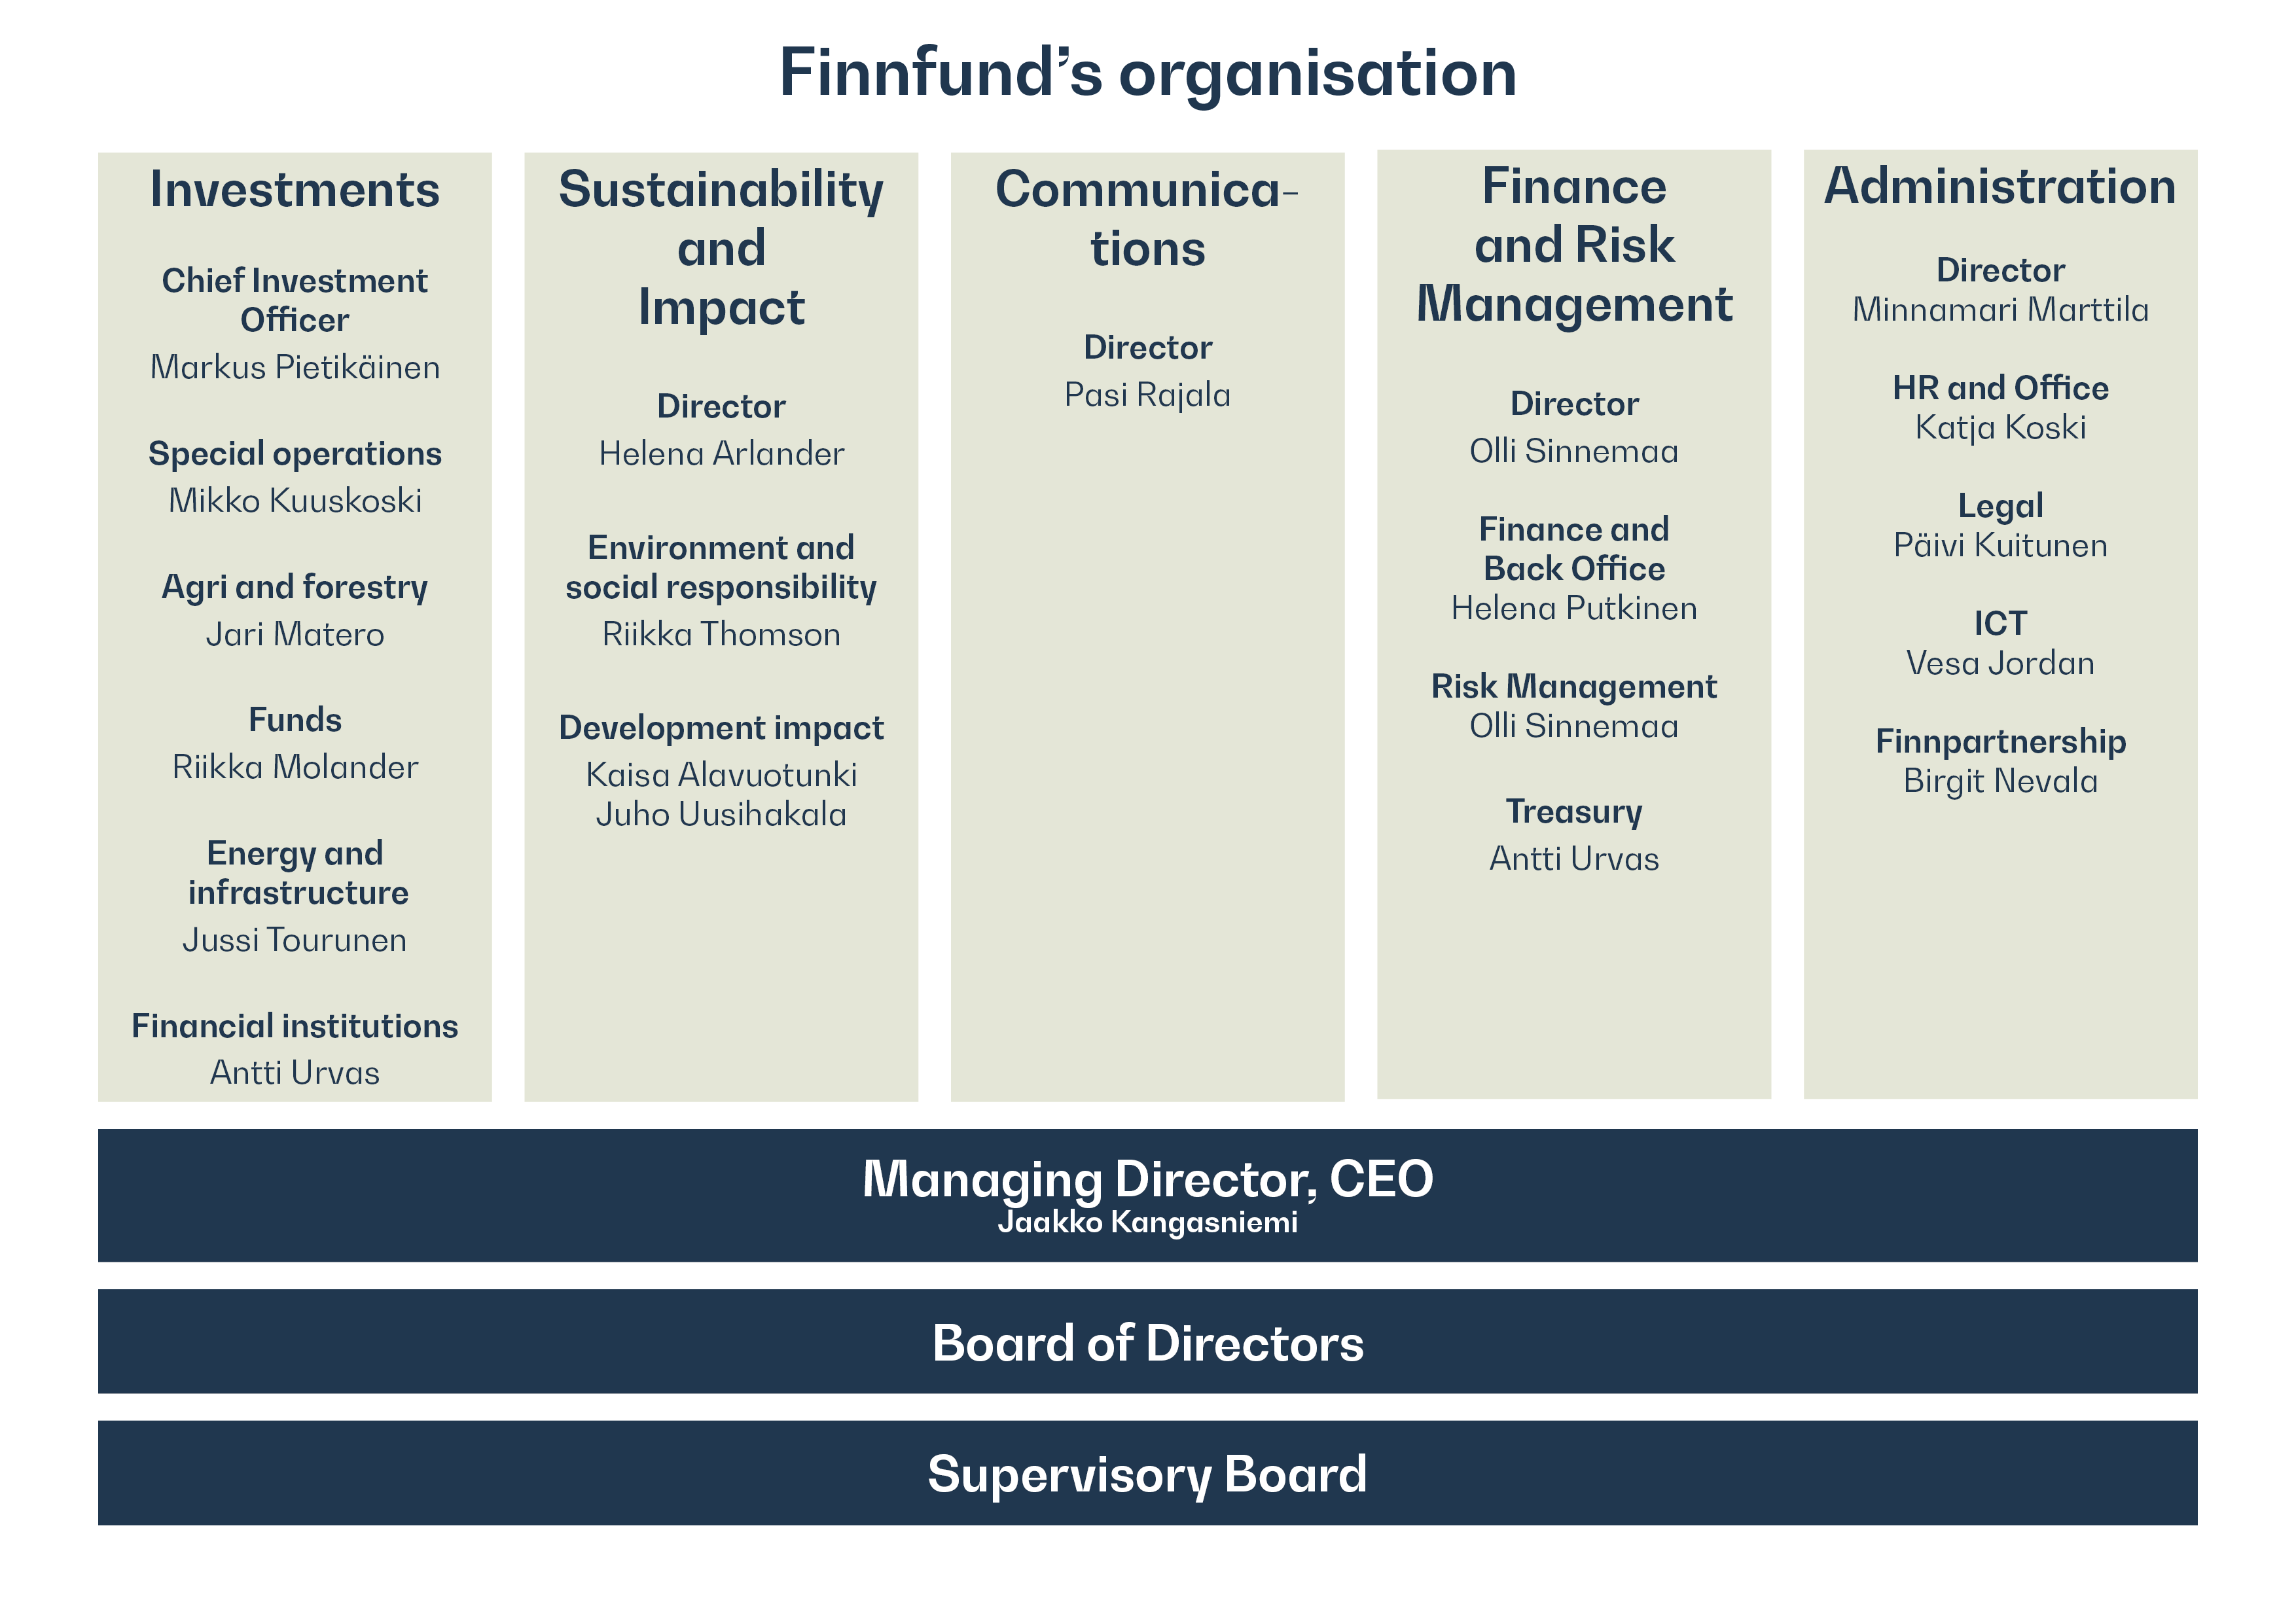 Finnfund's organisational structure